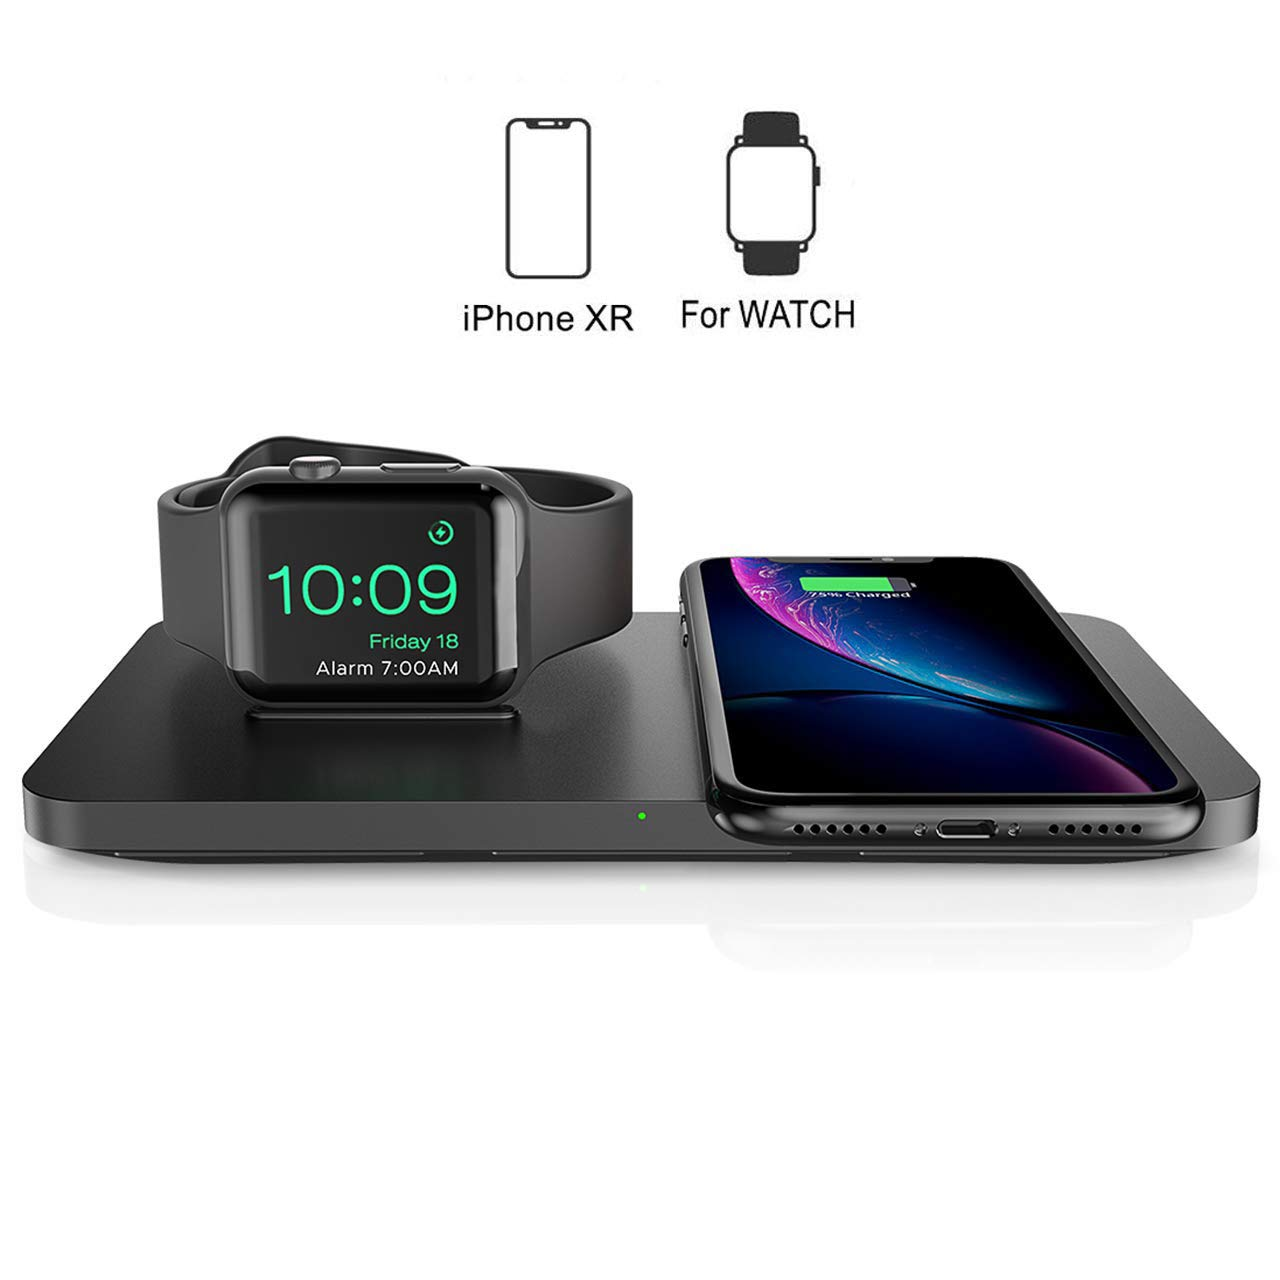 Wireless Charger, Seneo 2 in 1 Dual Wireless Charging Pad with iWatch Stand for iWatch 5/4/3/2, 7.5W Qi Fast Charger for iPhone 11/11 Pro Max/XR/XS Max/XS/X/8/8P, Airpods 2 (No iWatch Charging Cable) by Seneo